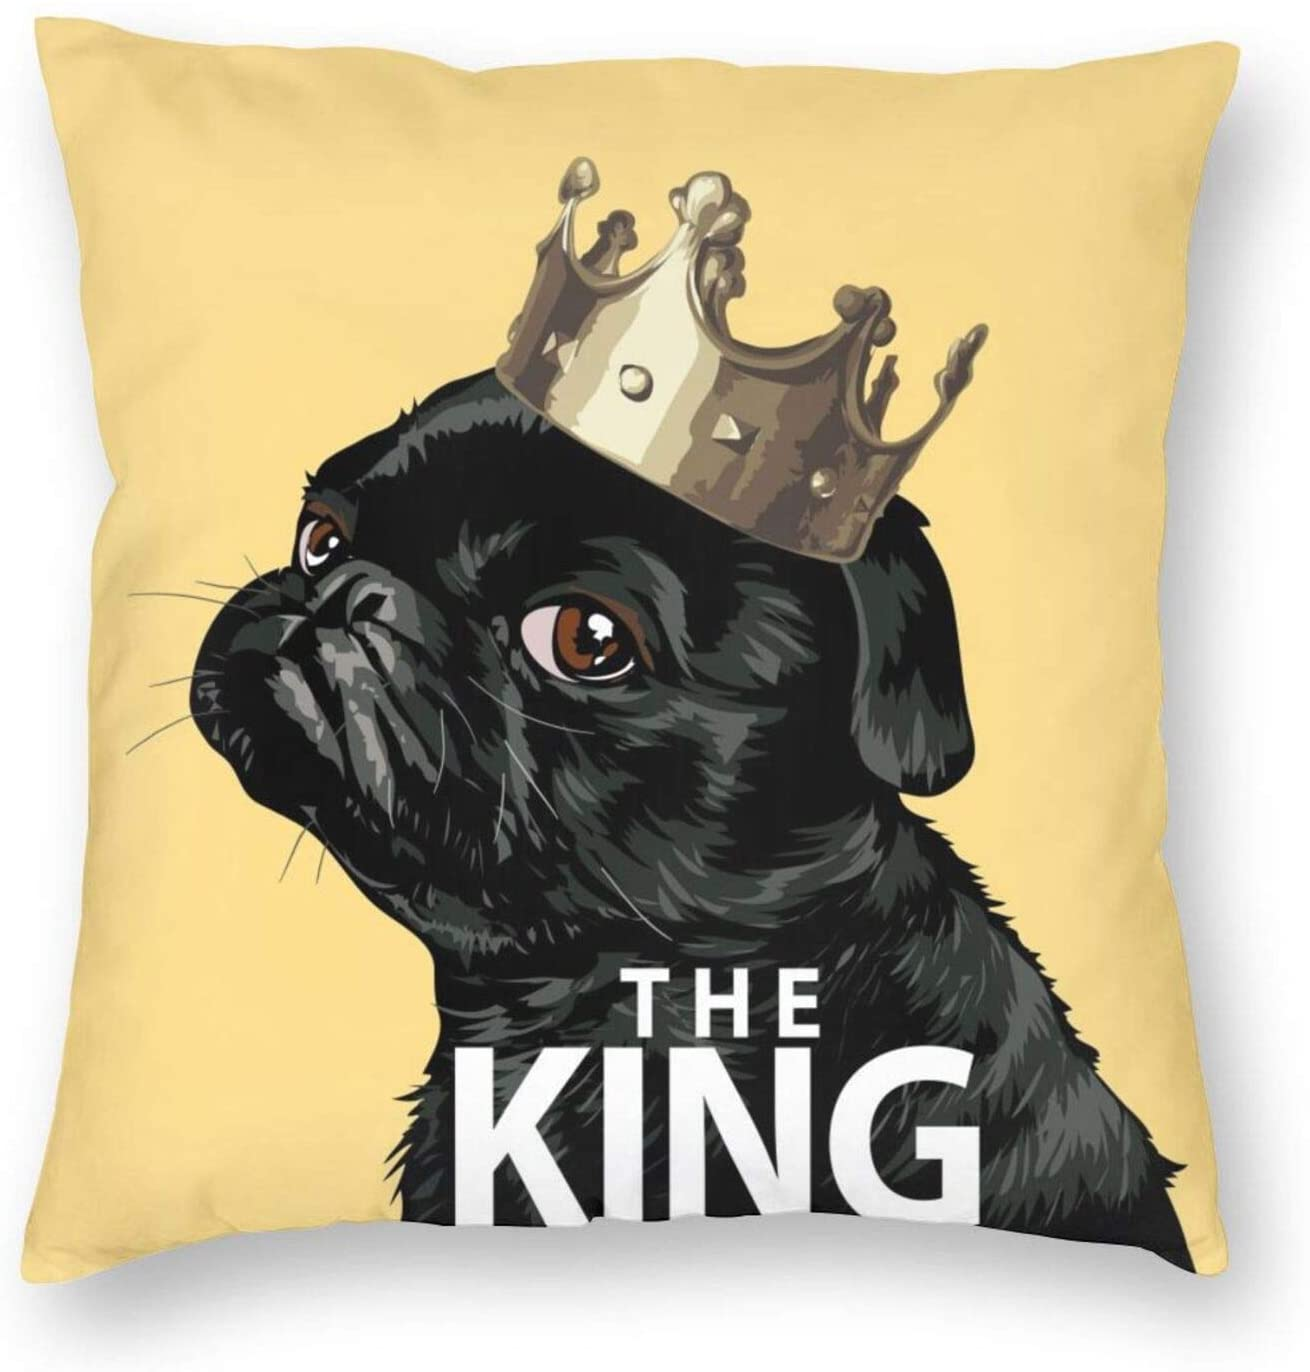 NN/AA Dog Pattern Throw Pillow Covers Cute Cartoon Animals Square Pillows Case Decorative Bedroom Livingroom Sofa with Zipper 18x18 Inch 45x45 cm